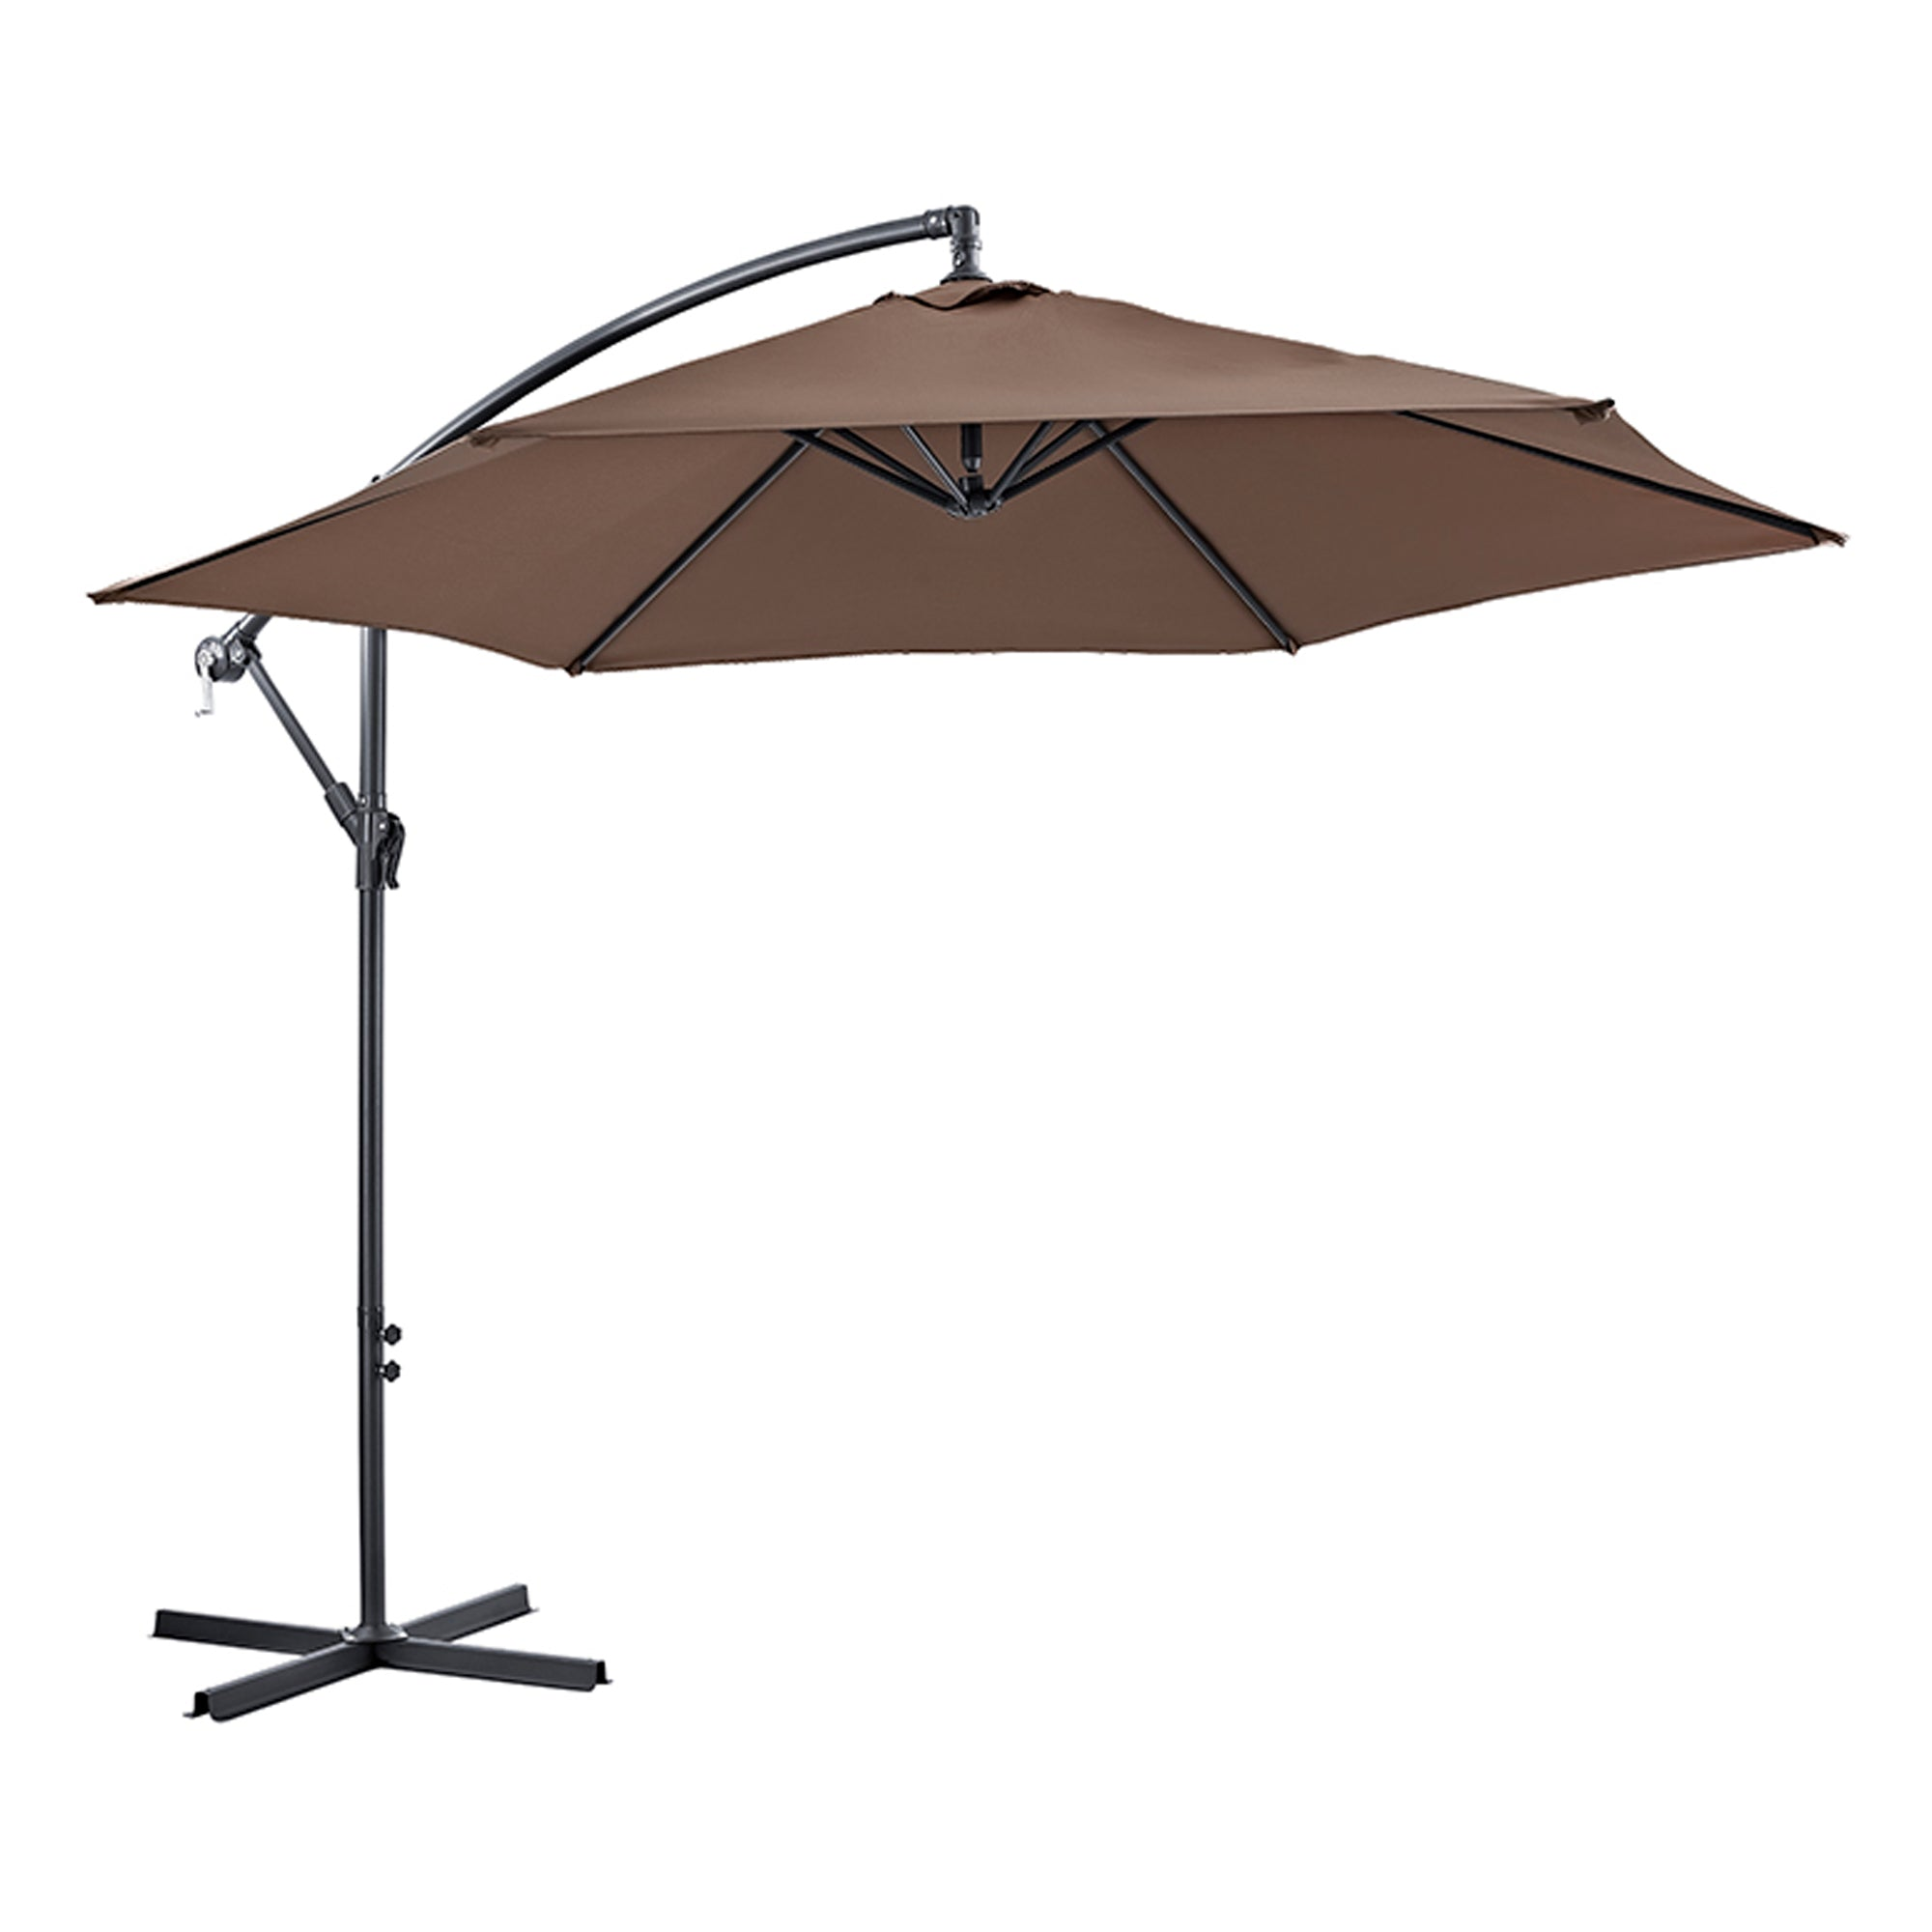 9 Foot Cantaliever Patio Umbrella, Brown